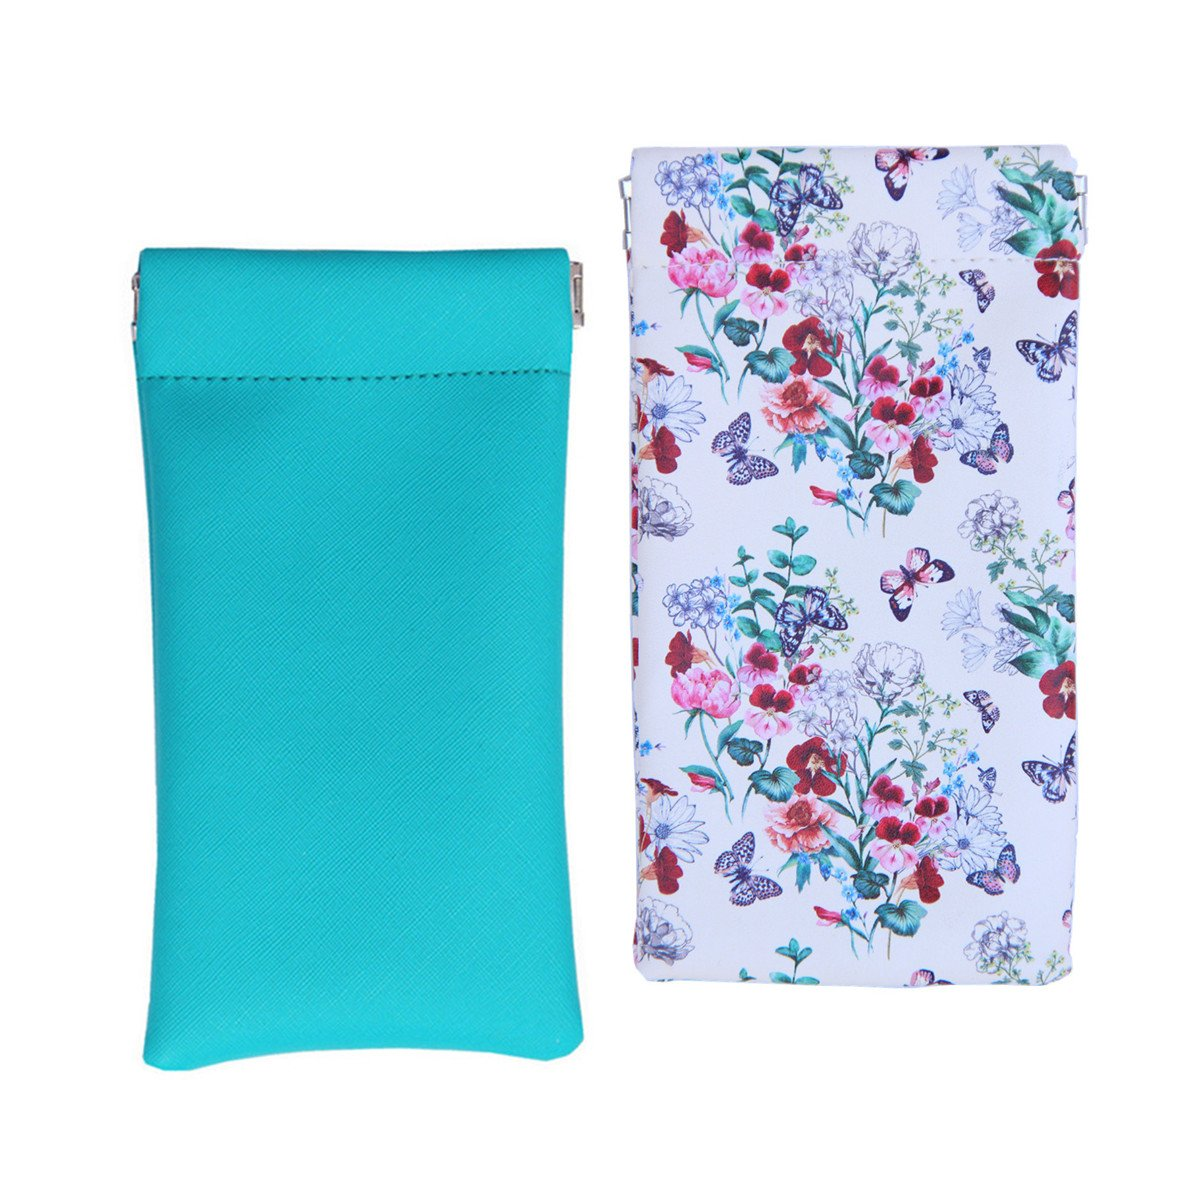 Lucky Leaf Sunglasses Goggles Pouch Case Eyeglass Holder Cell pouch with Cleaning Cloth (Teal+ Roses)